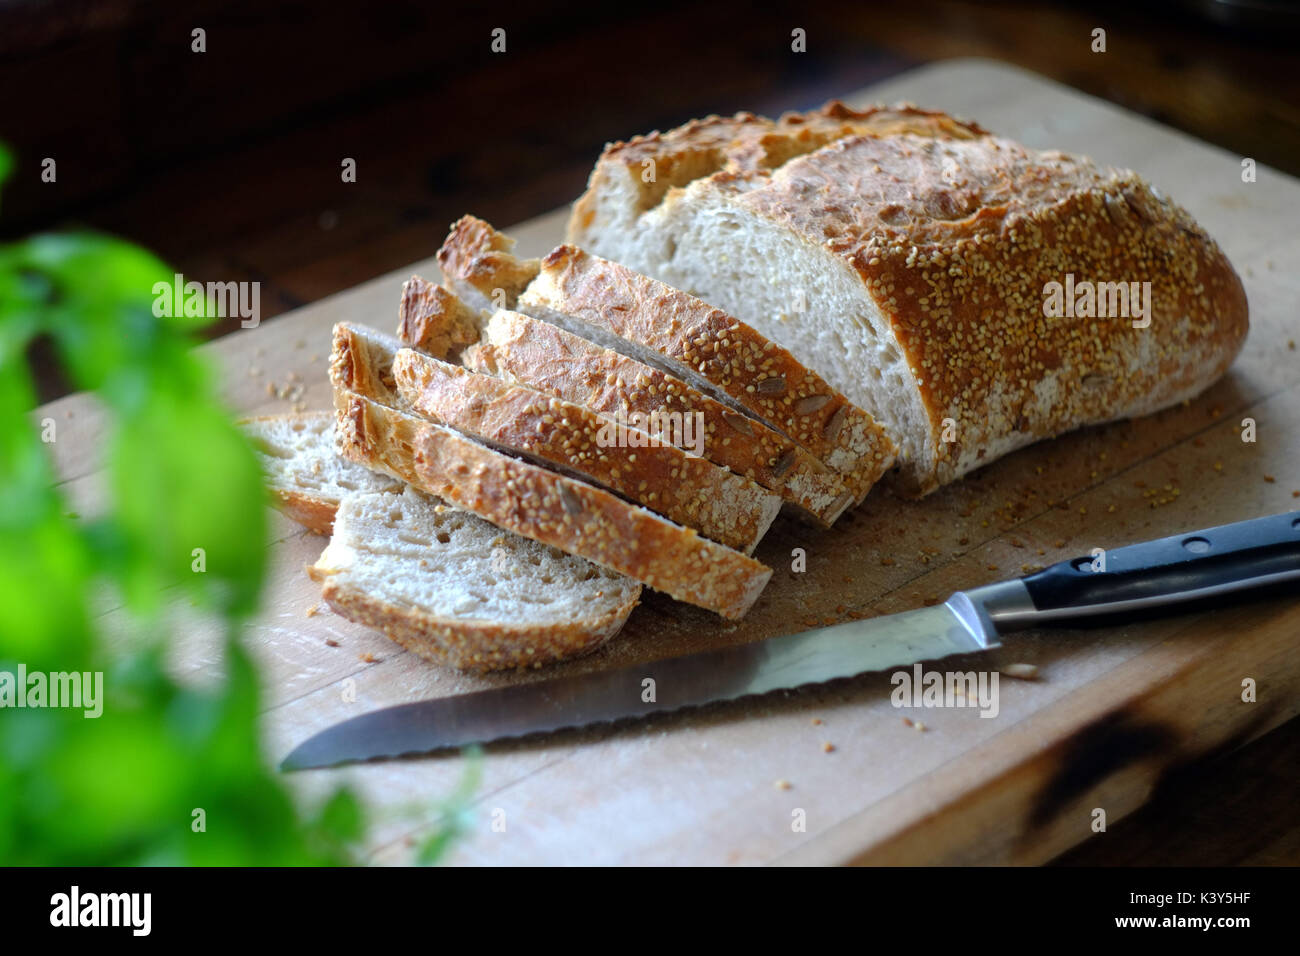 Fresh loaf of artisan bread being sliced on a wooden board. Stock Photo